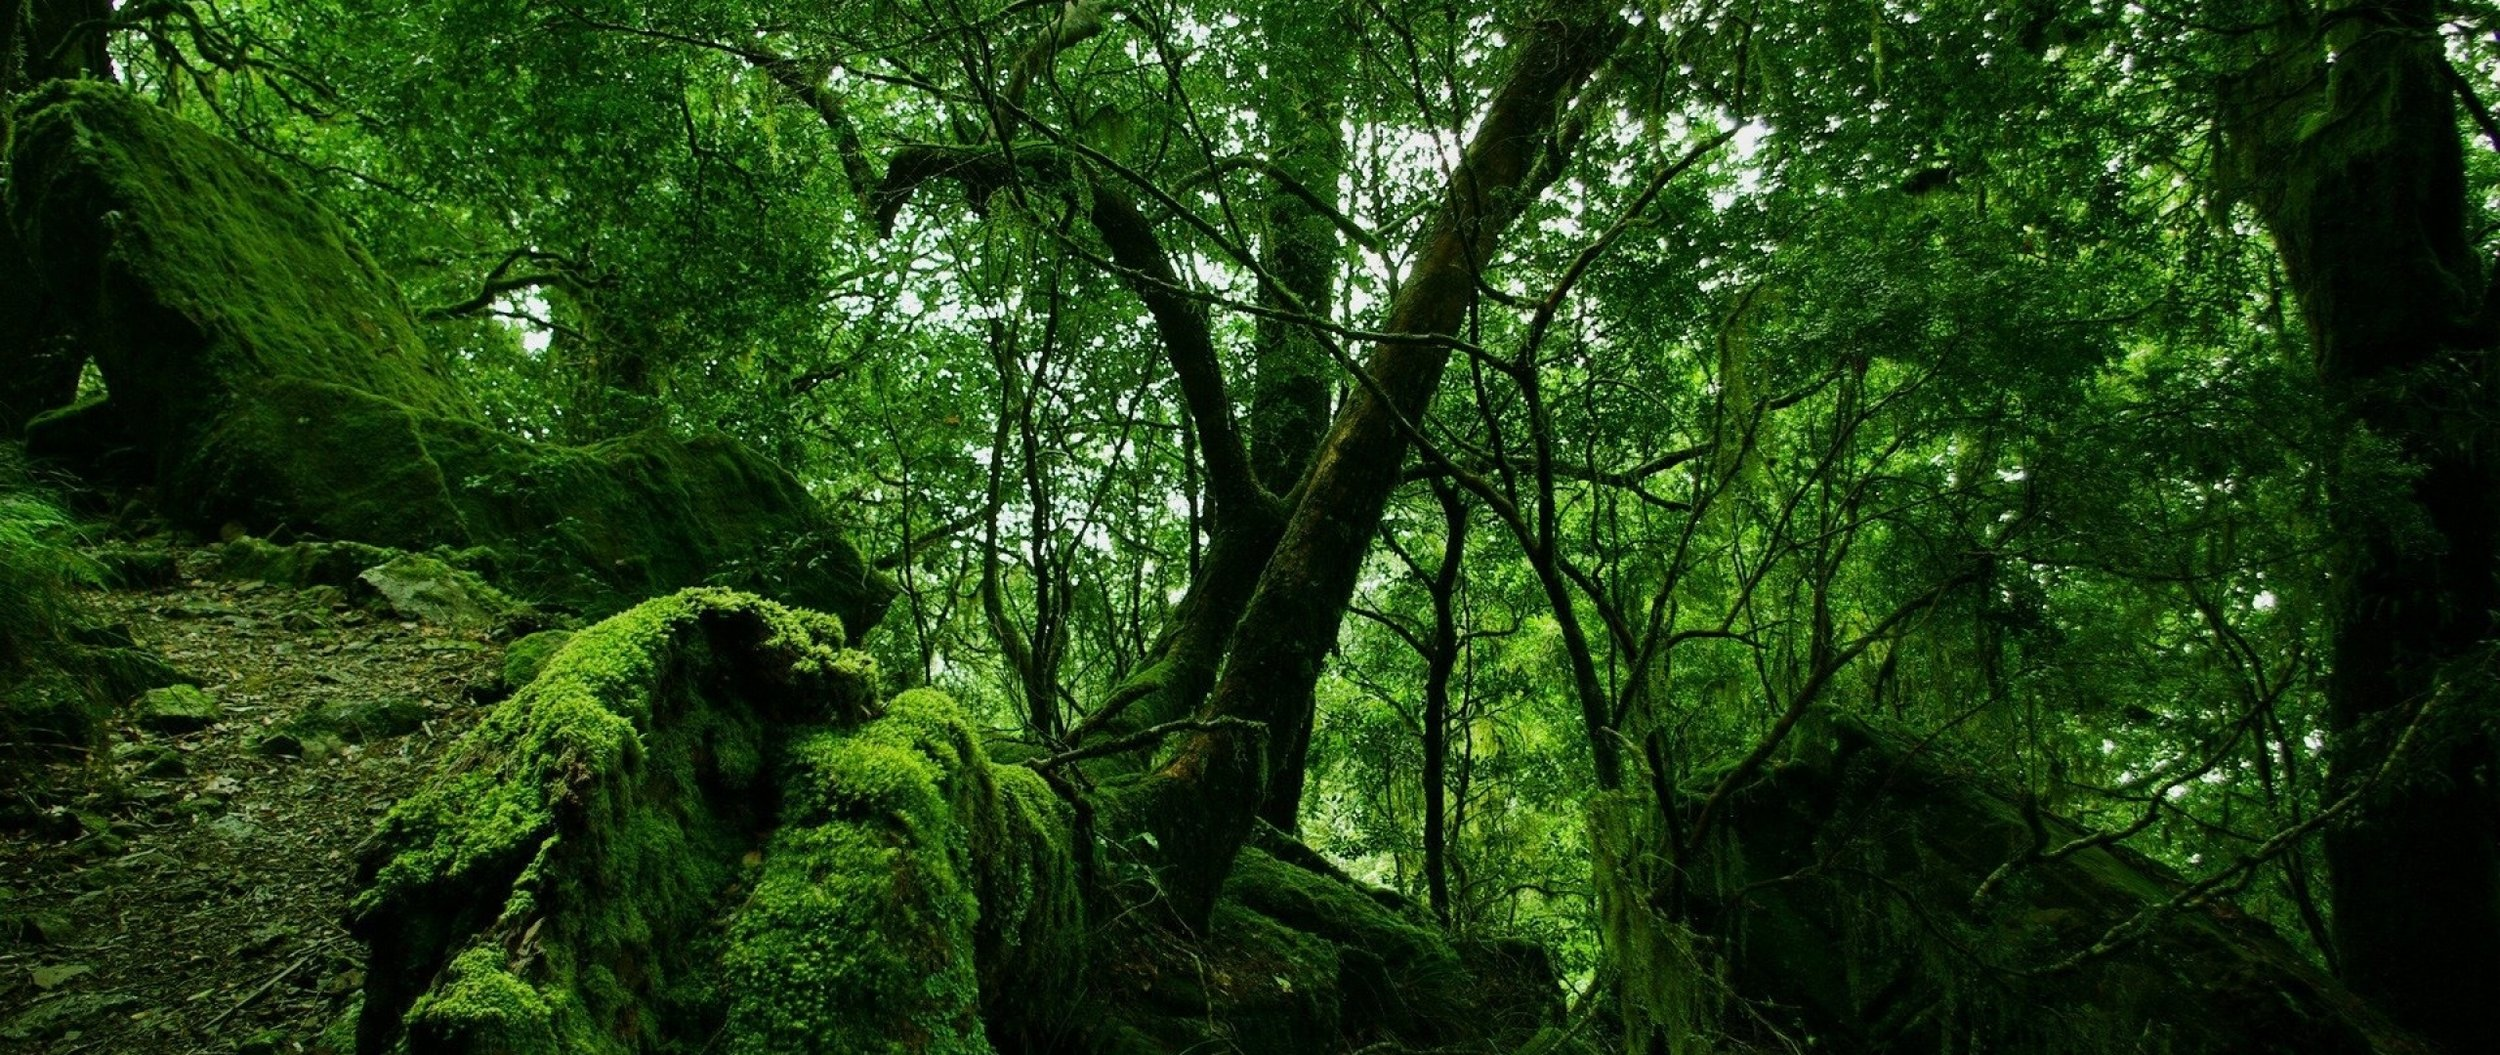 wood_trees_thickets_green_moss_vegetation_bushes_stones_leaves_60780_2560x1080.jpg